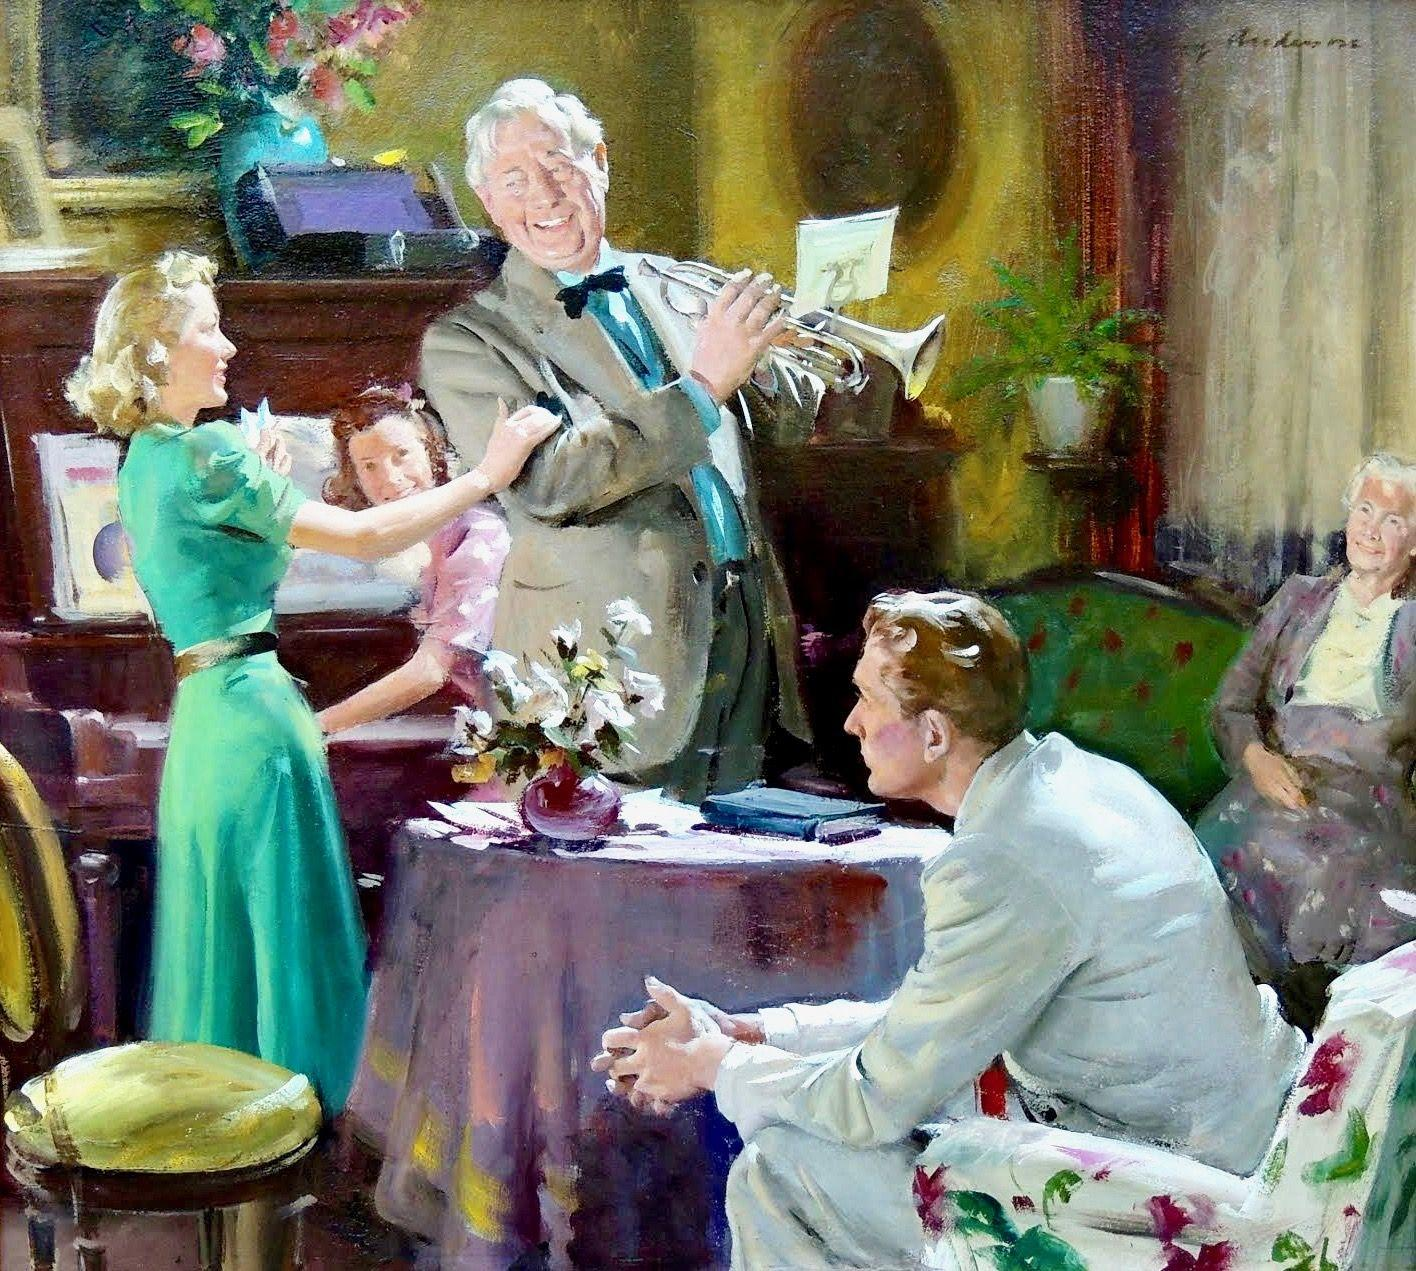 Weekend with the Family, Woman's Home Companion, 1940